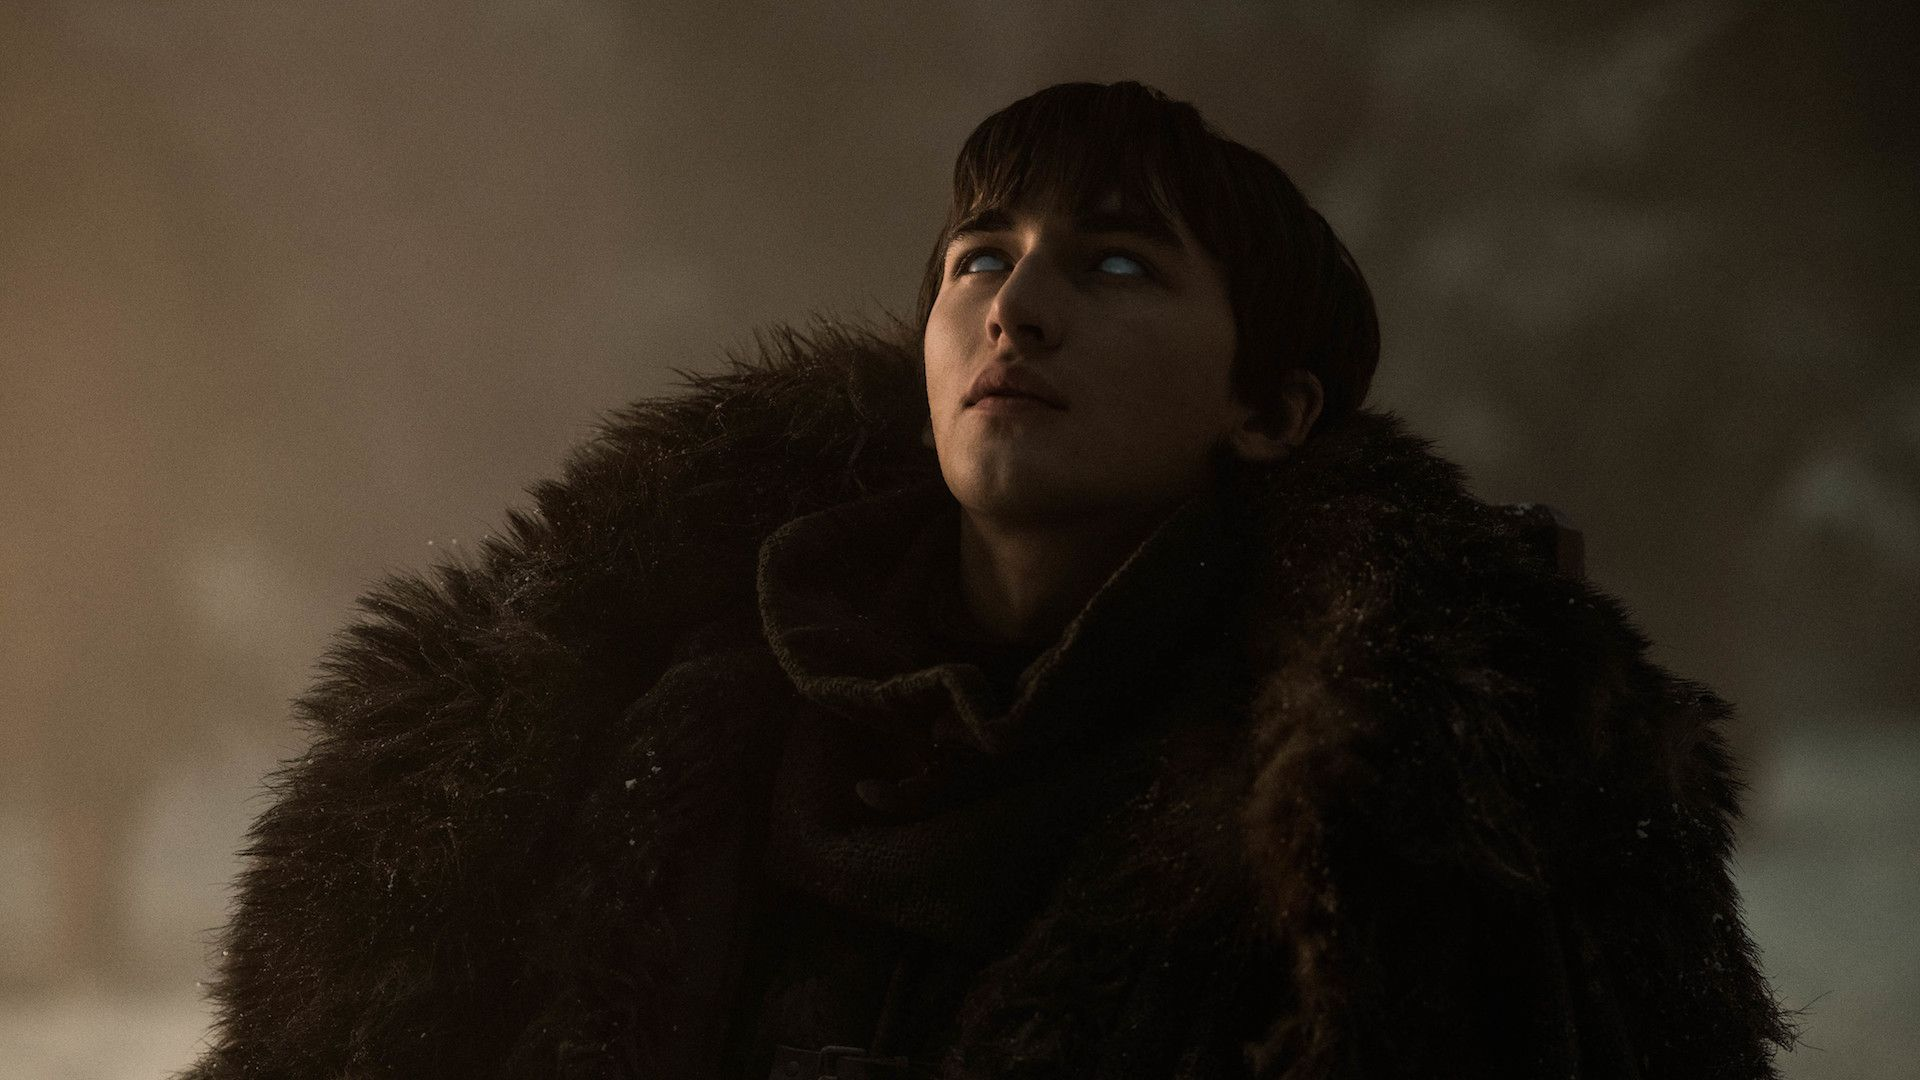 the-final-game-of-thrones-twist-why-bran-stark-could-end-up-vqfp-1558429932.jpg